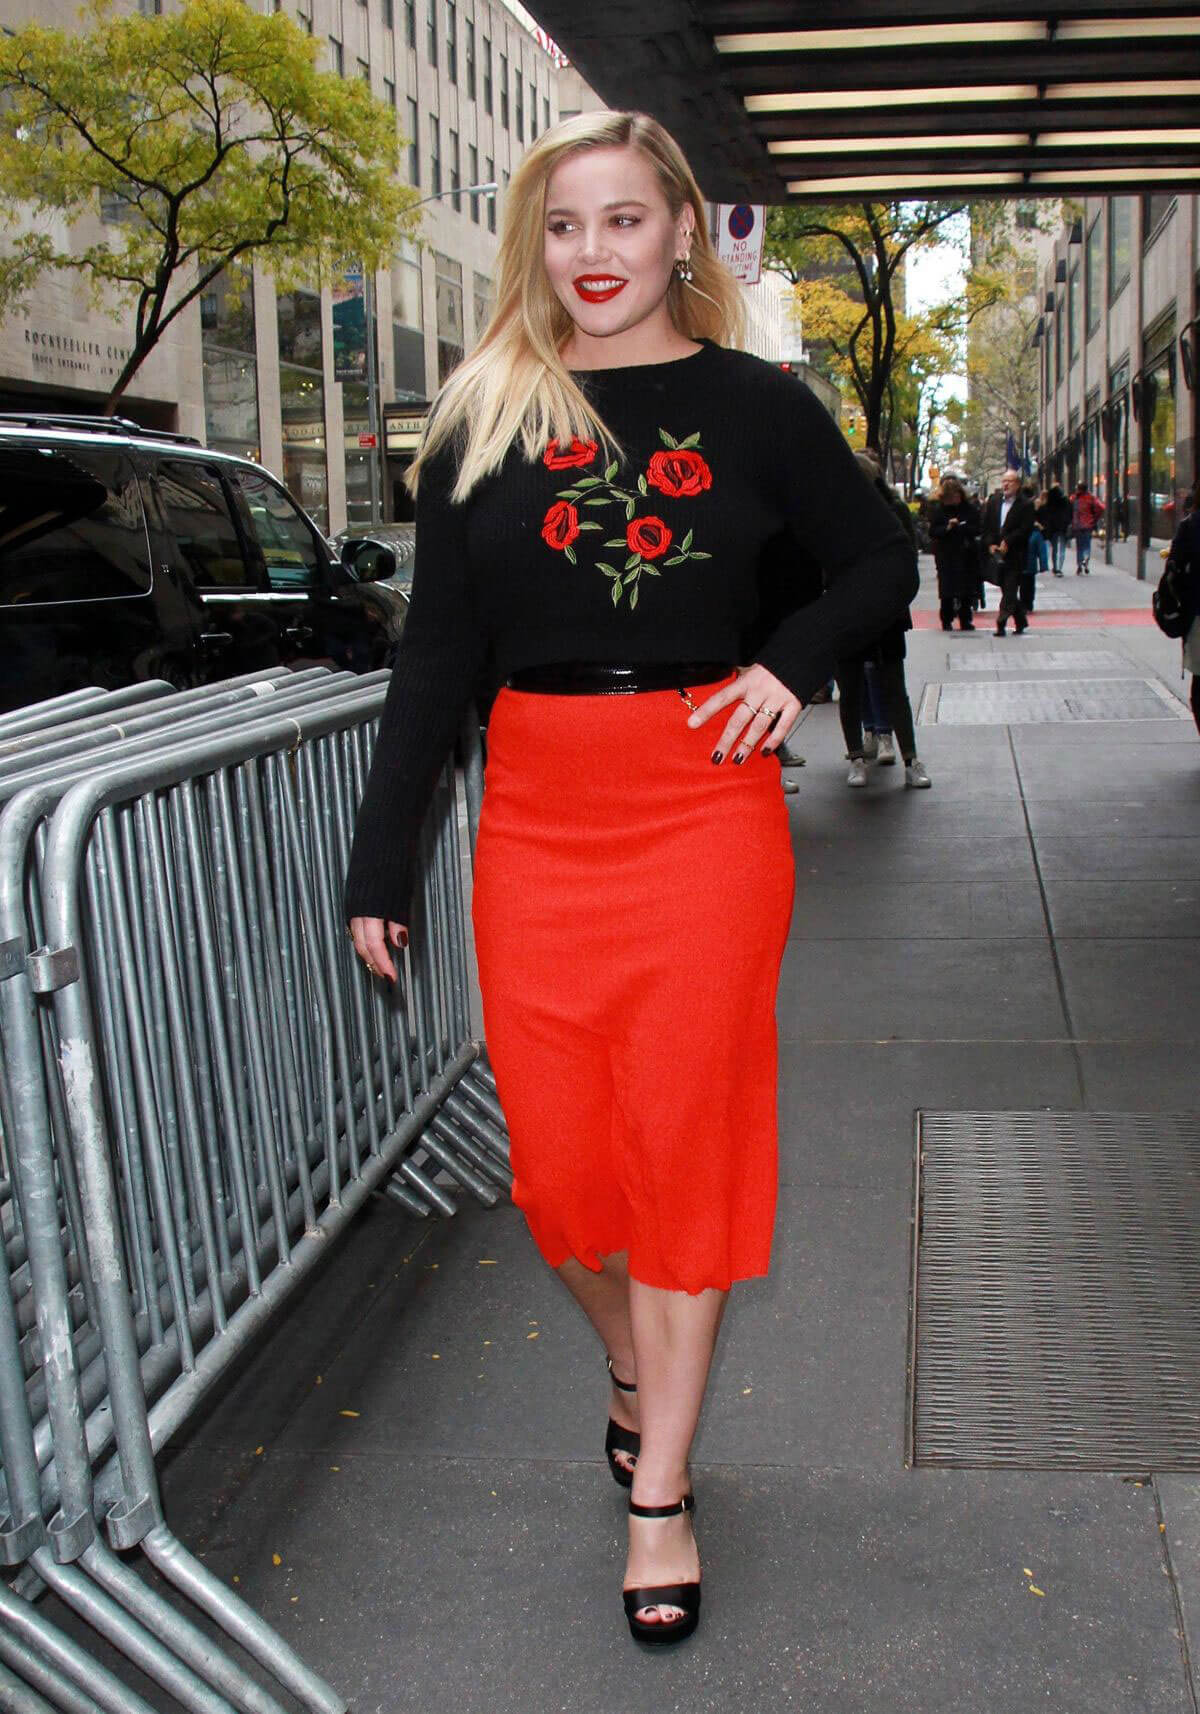 Abbie Cornish wears Black & Red Outfit at New York Live